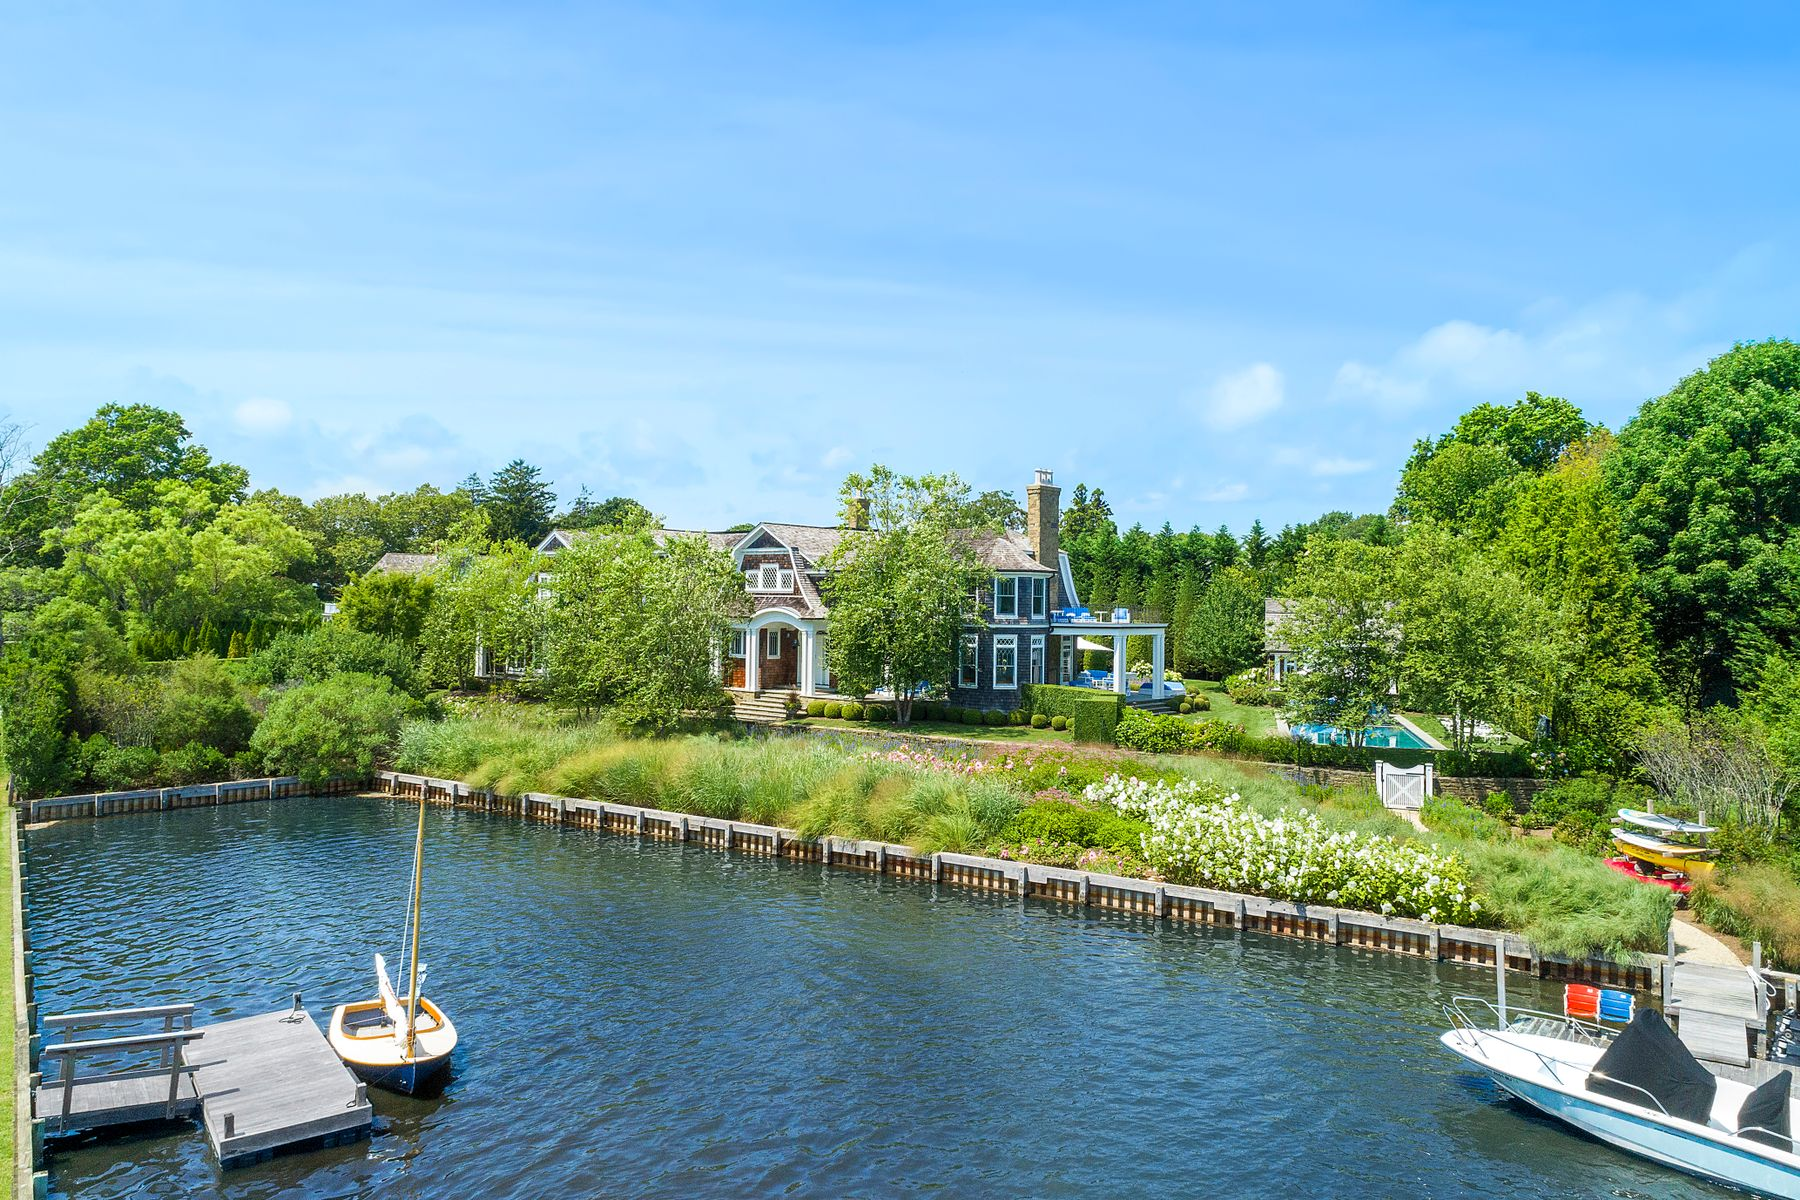 Single Family Homes for Active at Water Mill Waterfront 29 Cobb Isle Road Water Mill, New York 11976 United States